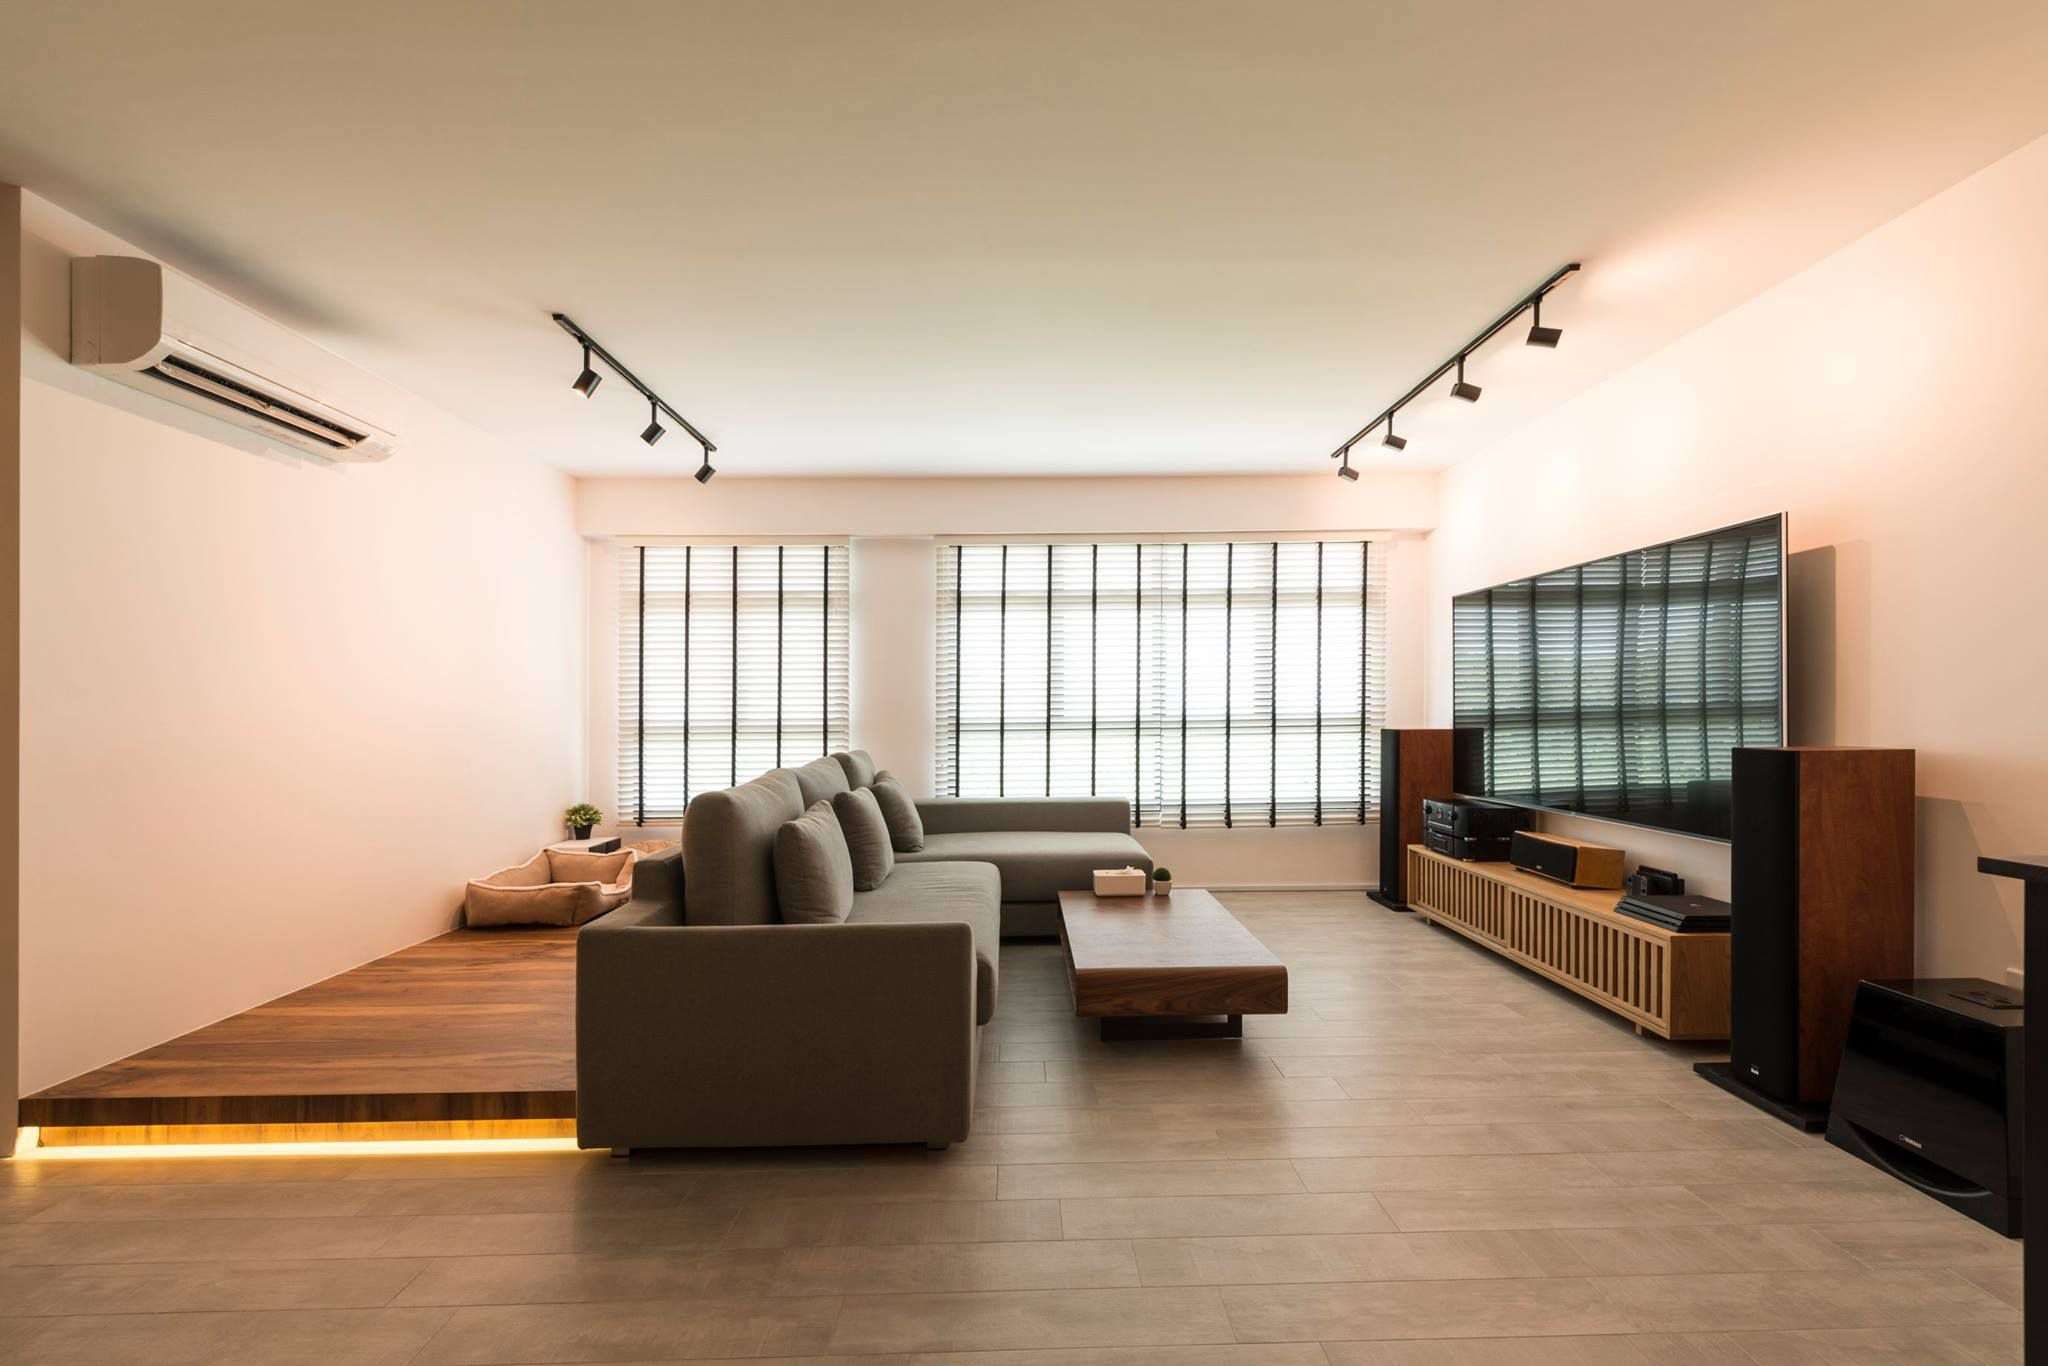 Living Area Interior Design Presents A More Modern Minimalist Outlook